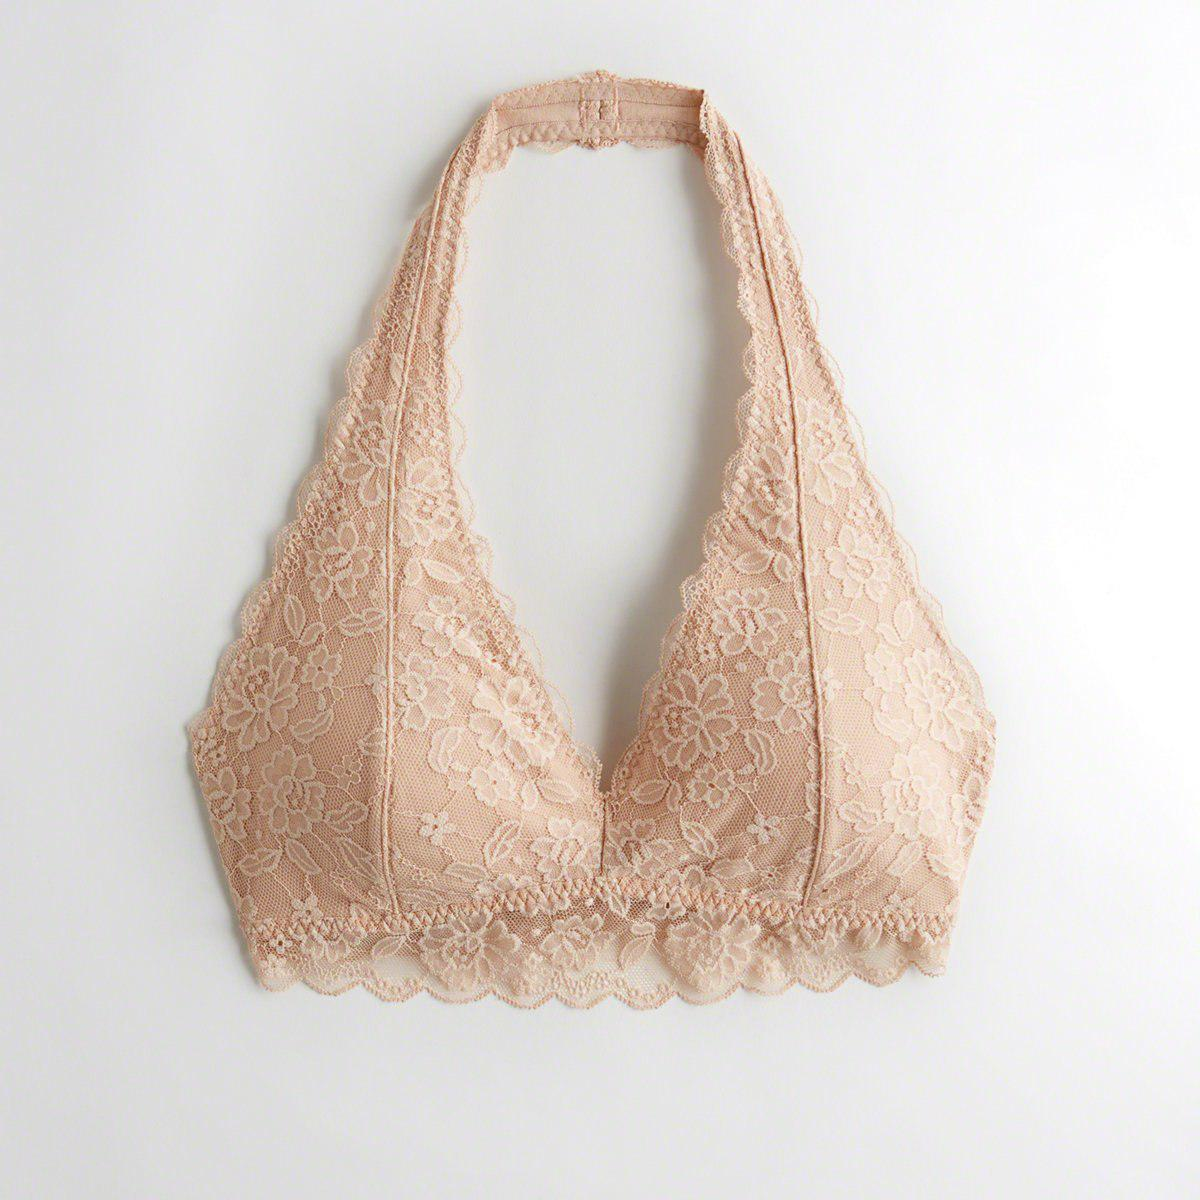 b54a28ed068 Hollister. Women s Natural Girls Lace Halter Bralette With Removable Pads  From Hollister